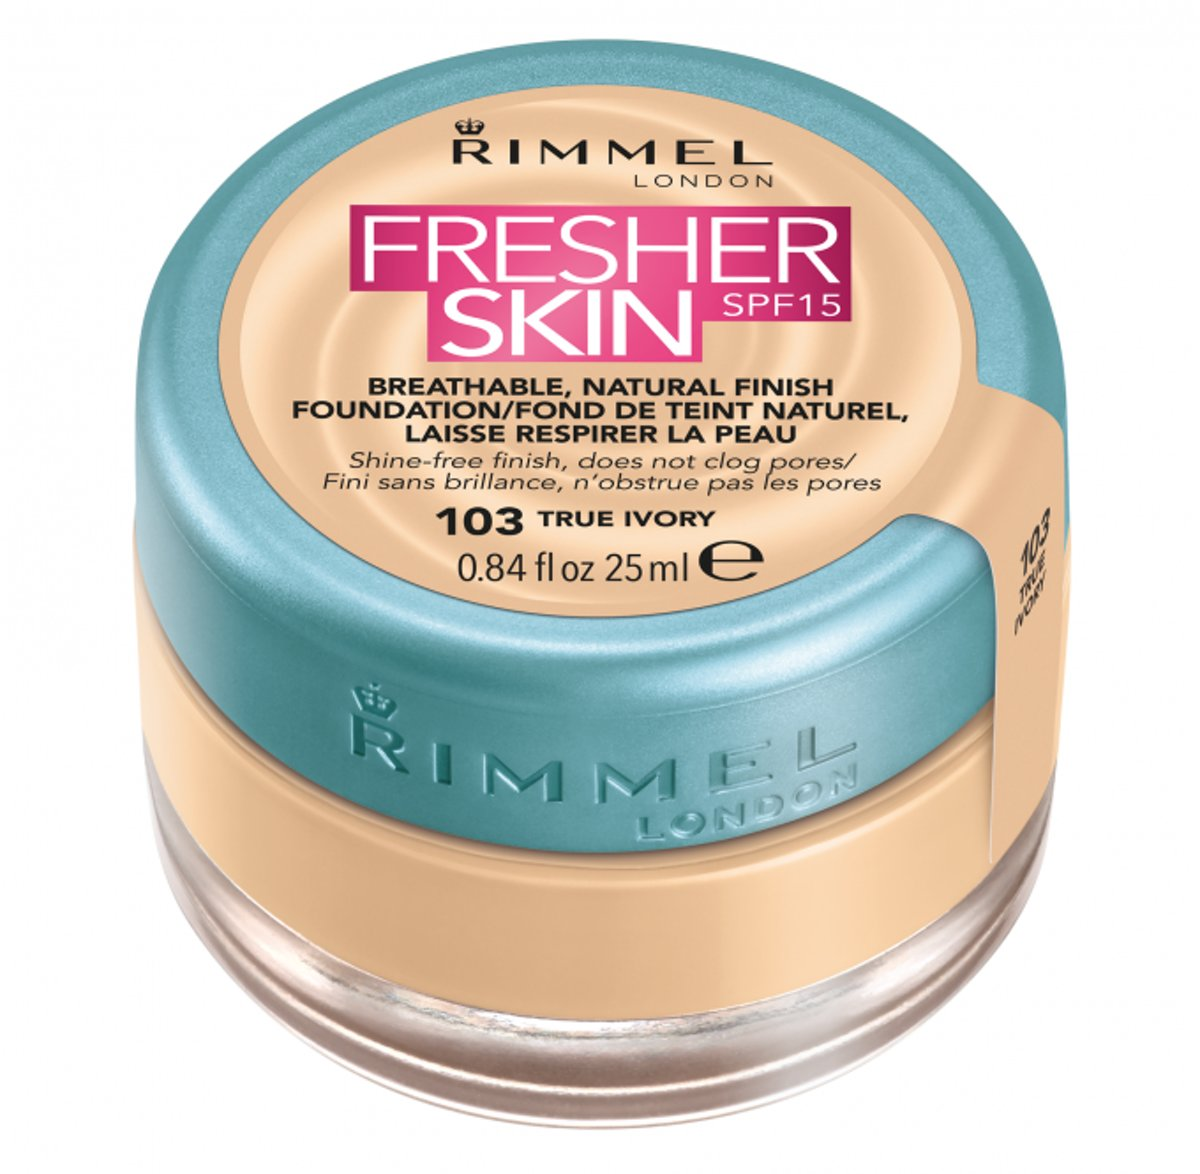 Rimmel London Fresher Skin Foundation - 103 True Ivory